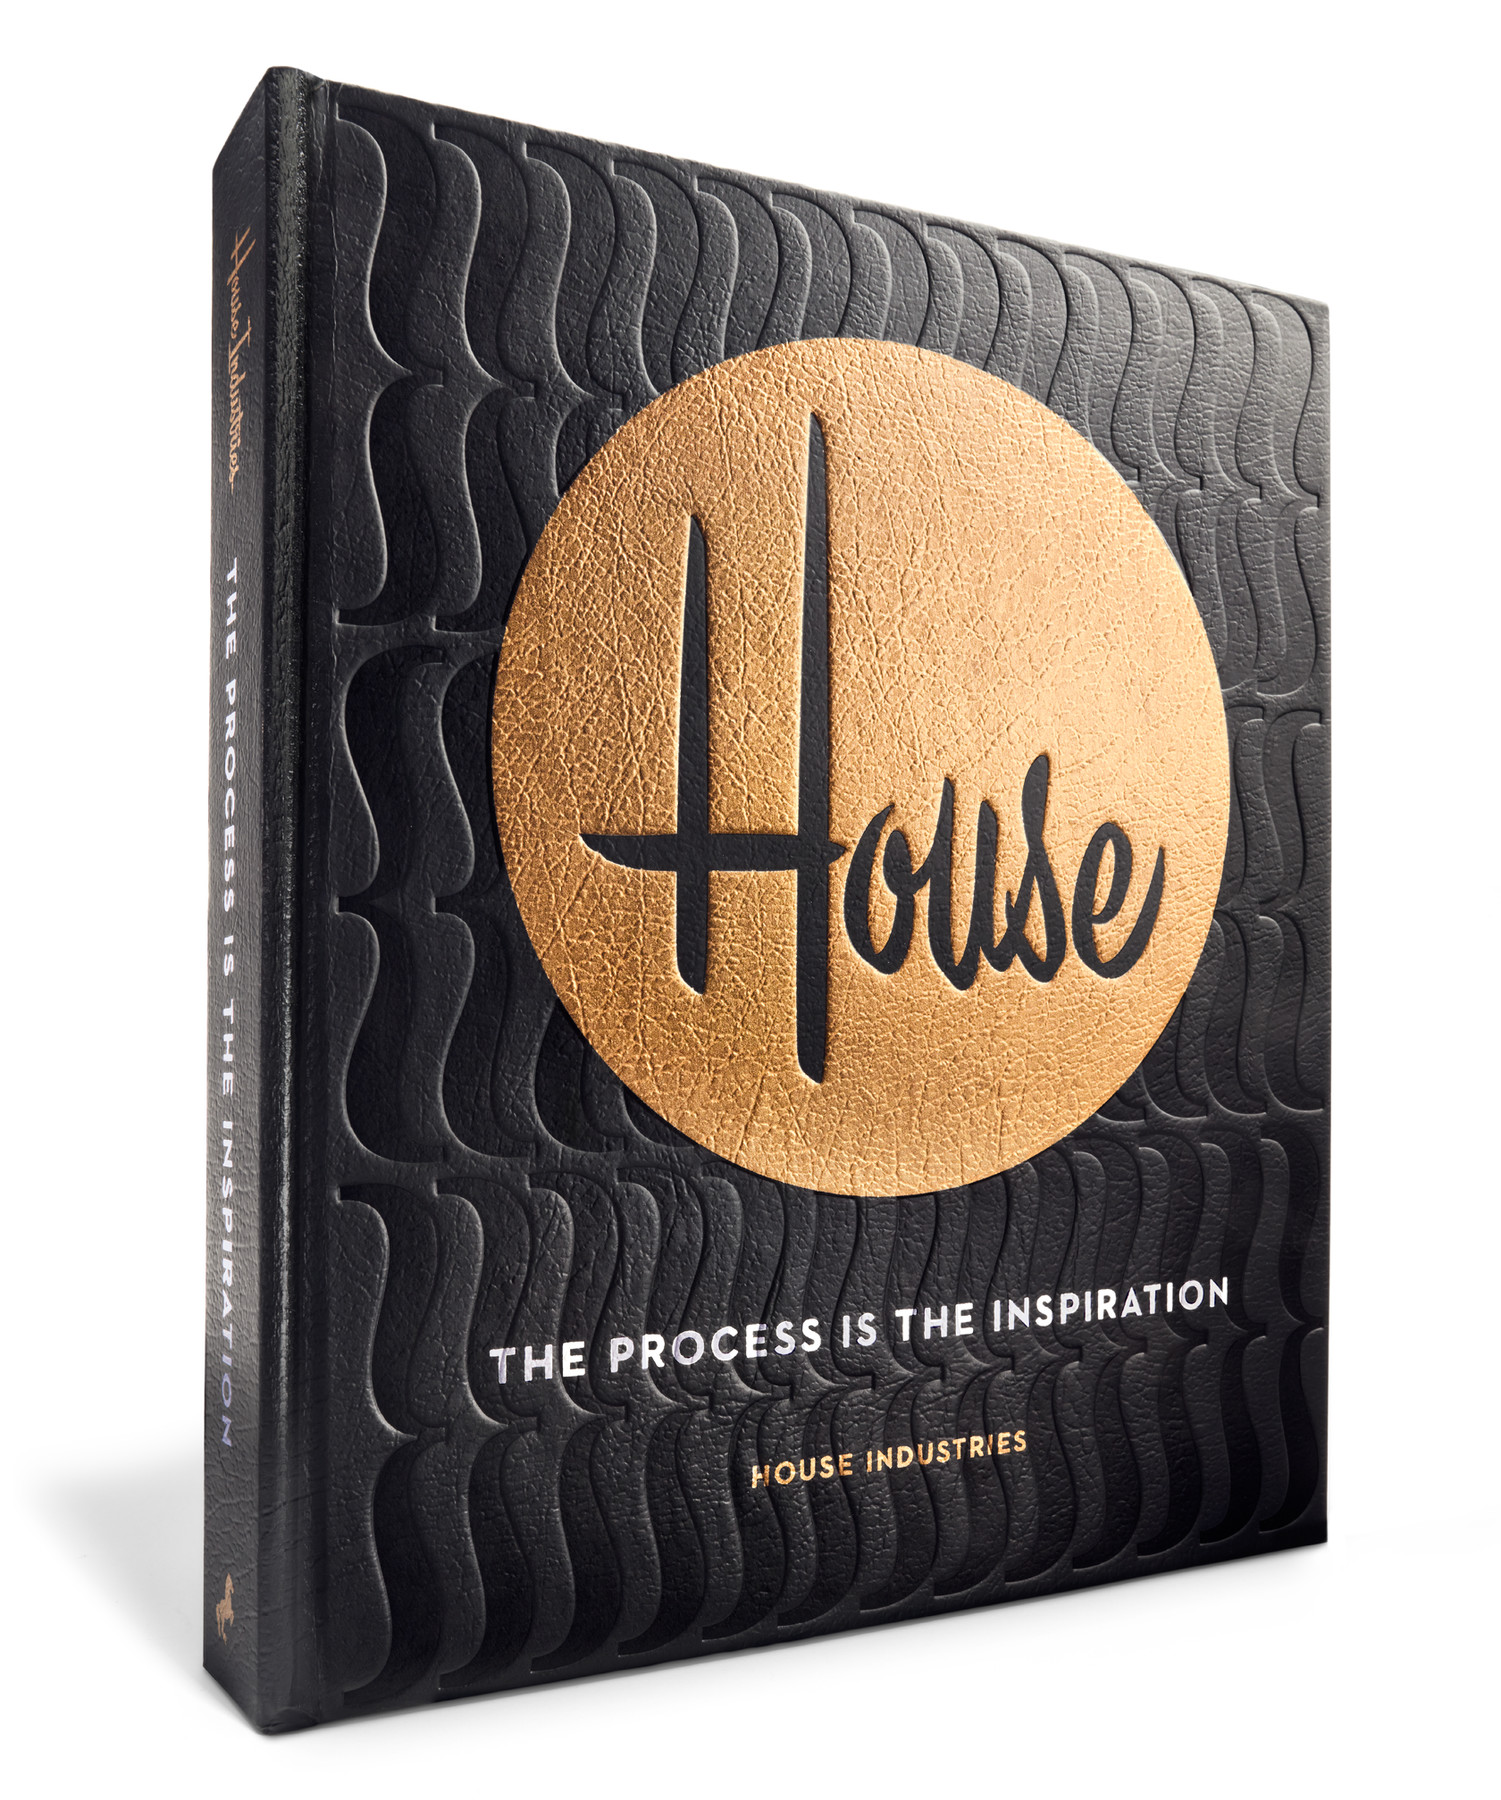 the process is the inspiration book house industries